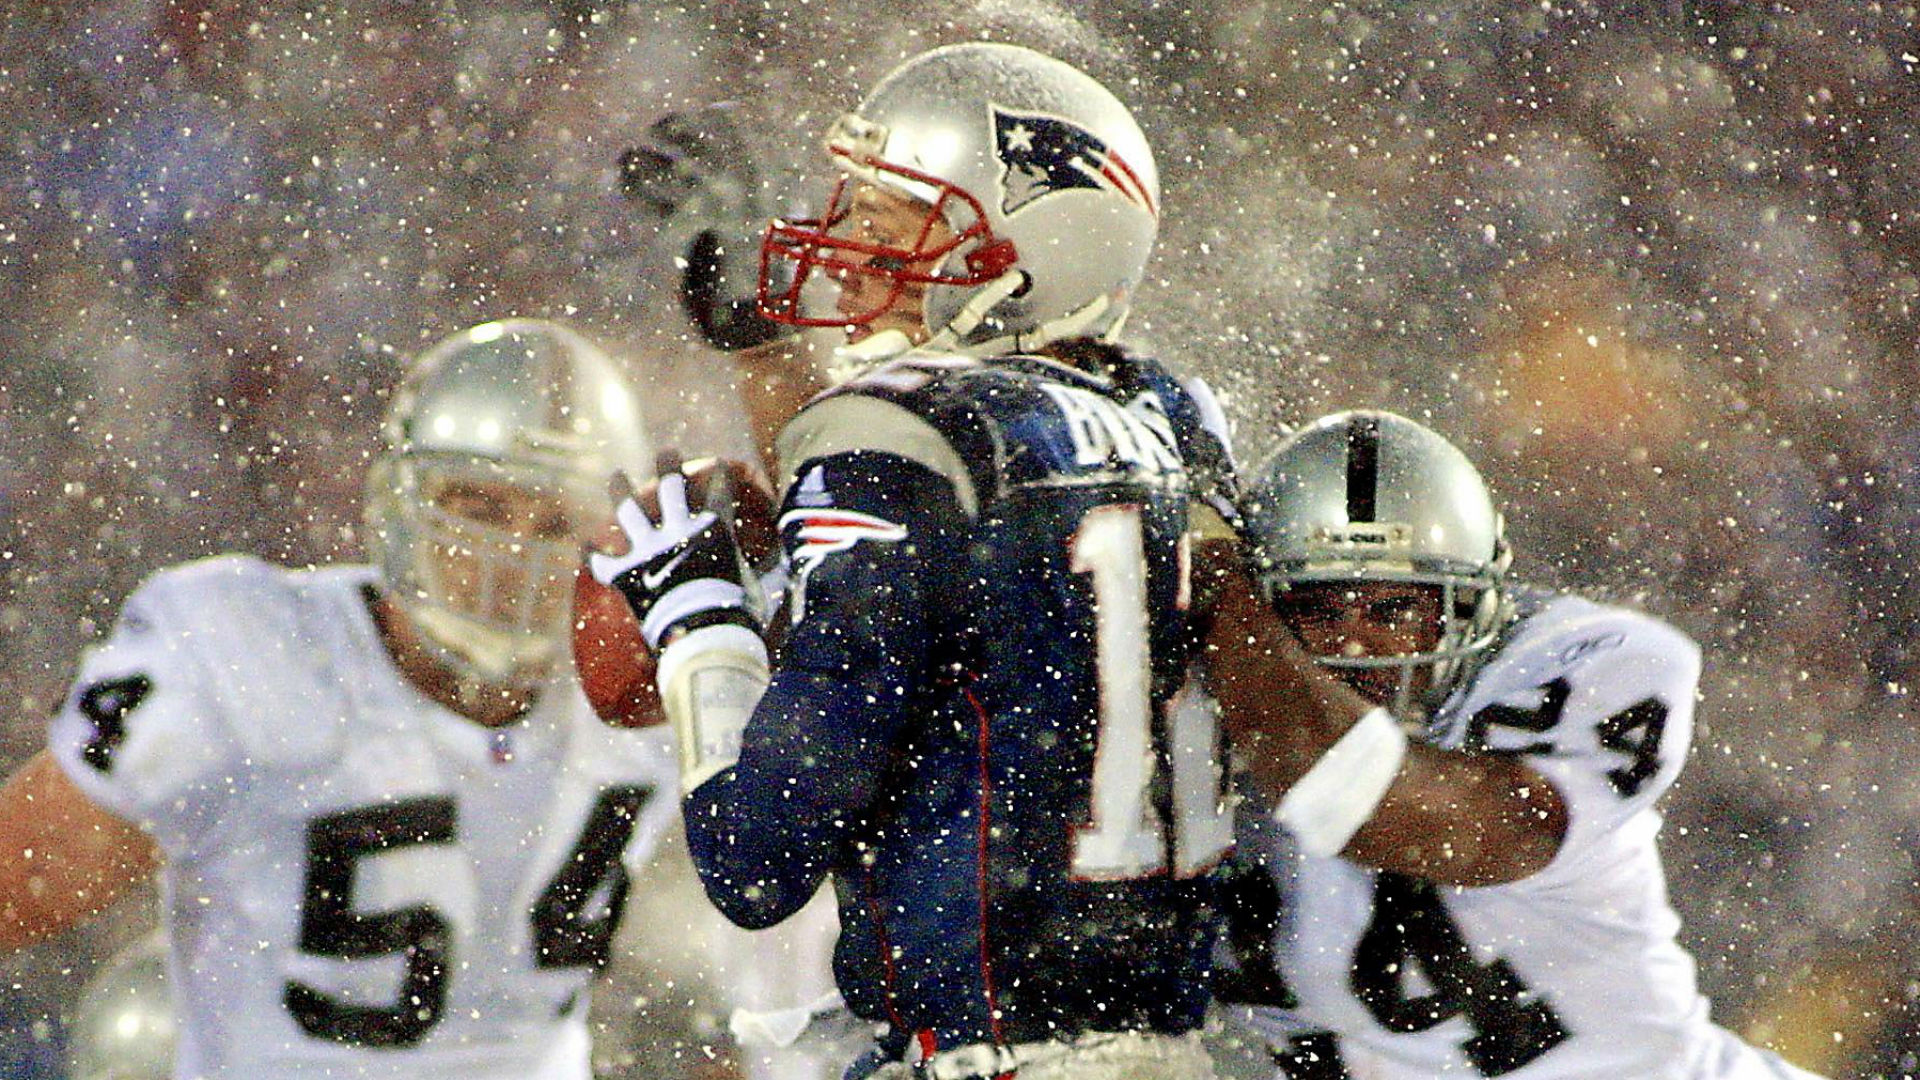 Tom Brady, Jon Gruden and the 'Tuck Rule' come full circle in Tampa Bay